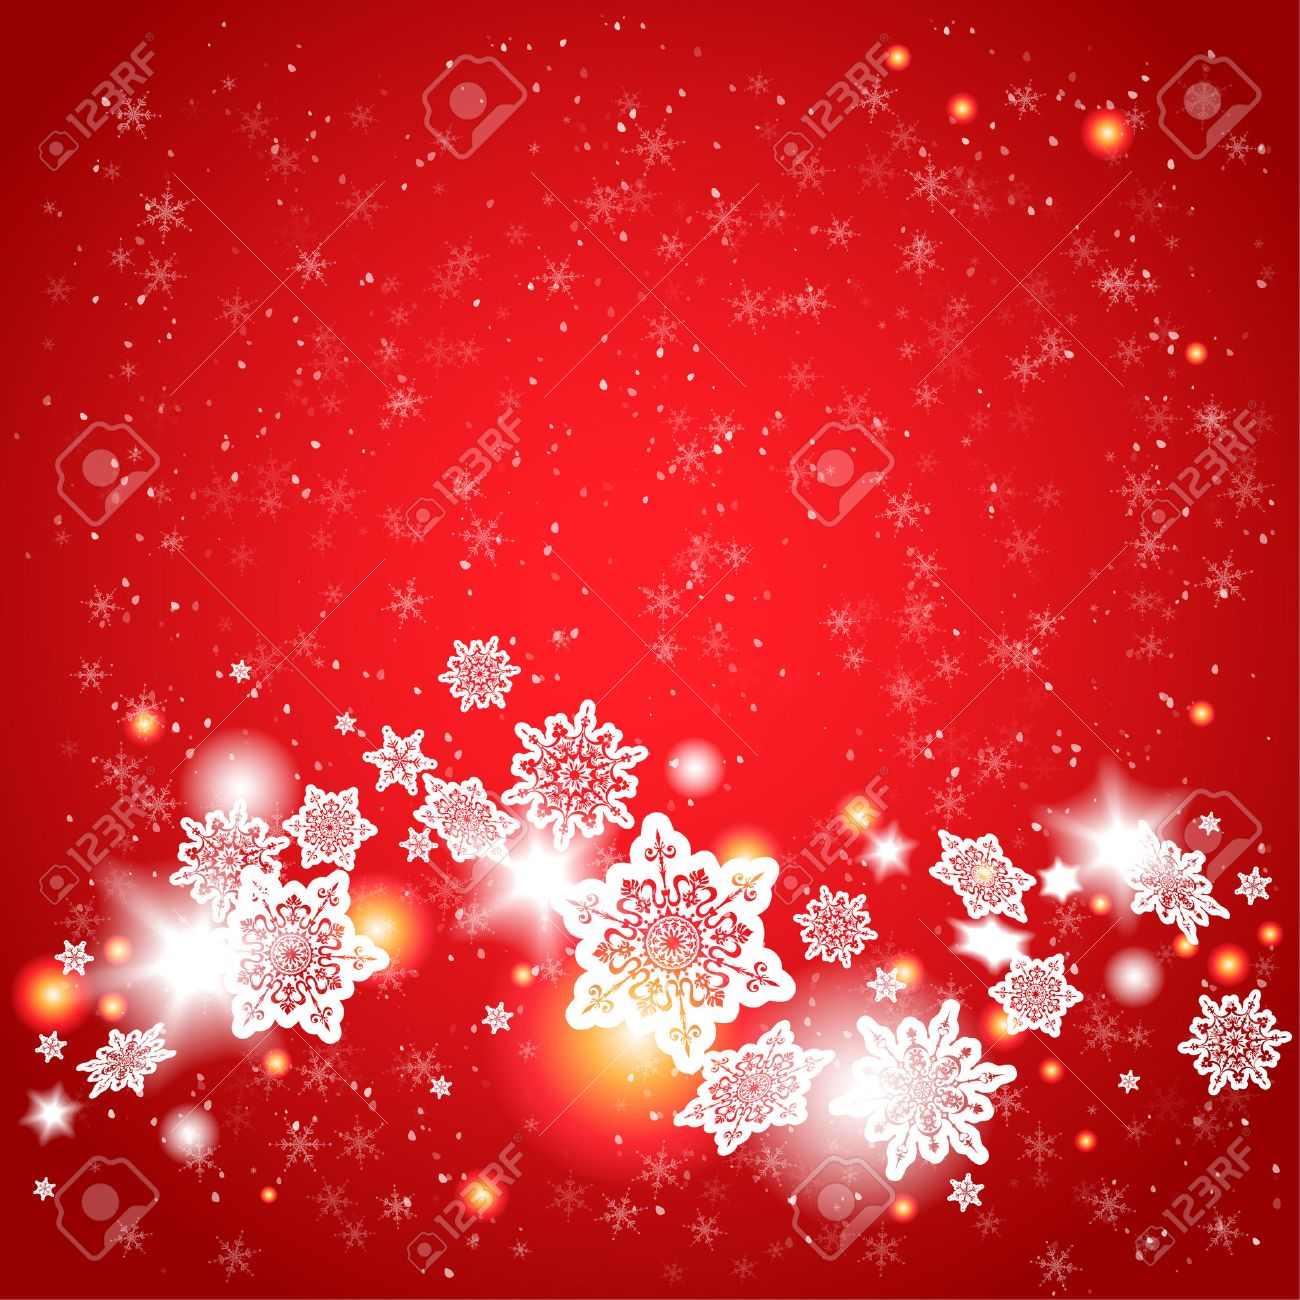 Red background and snowflakes with place for text - 32373060